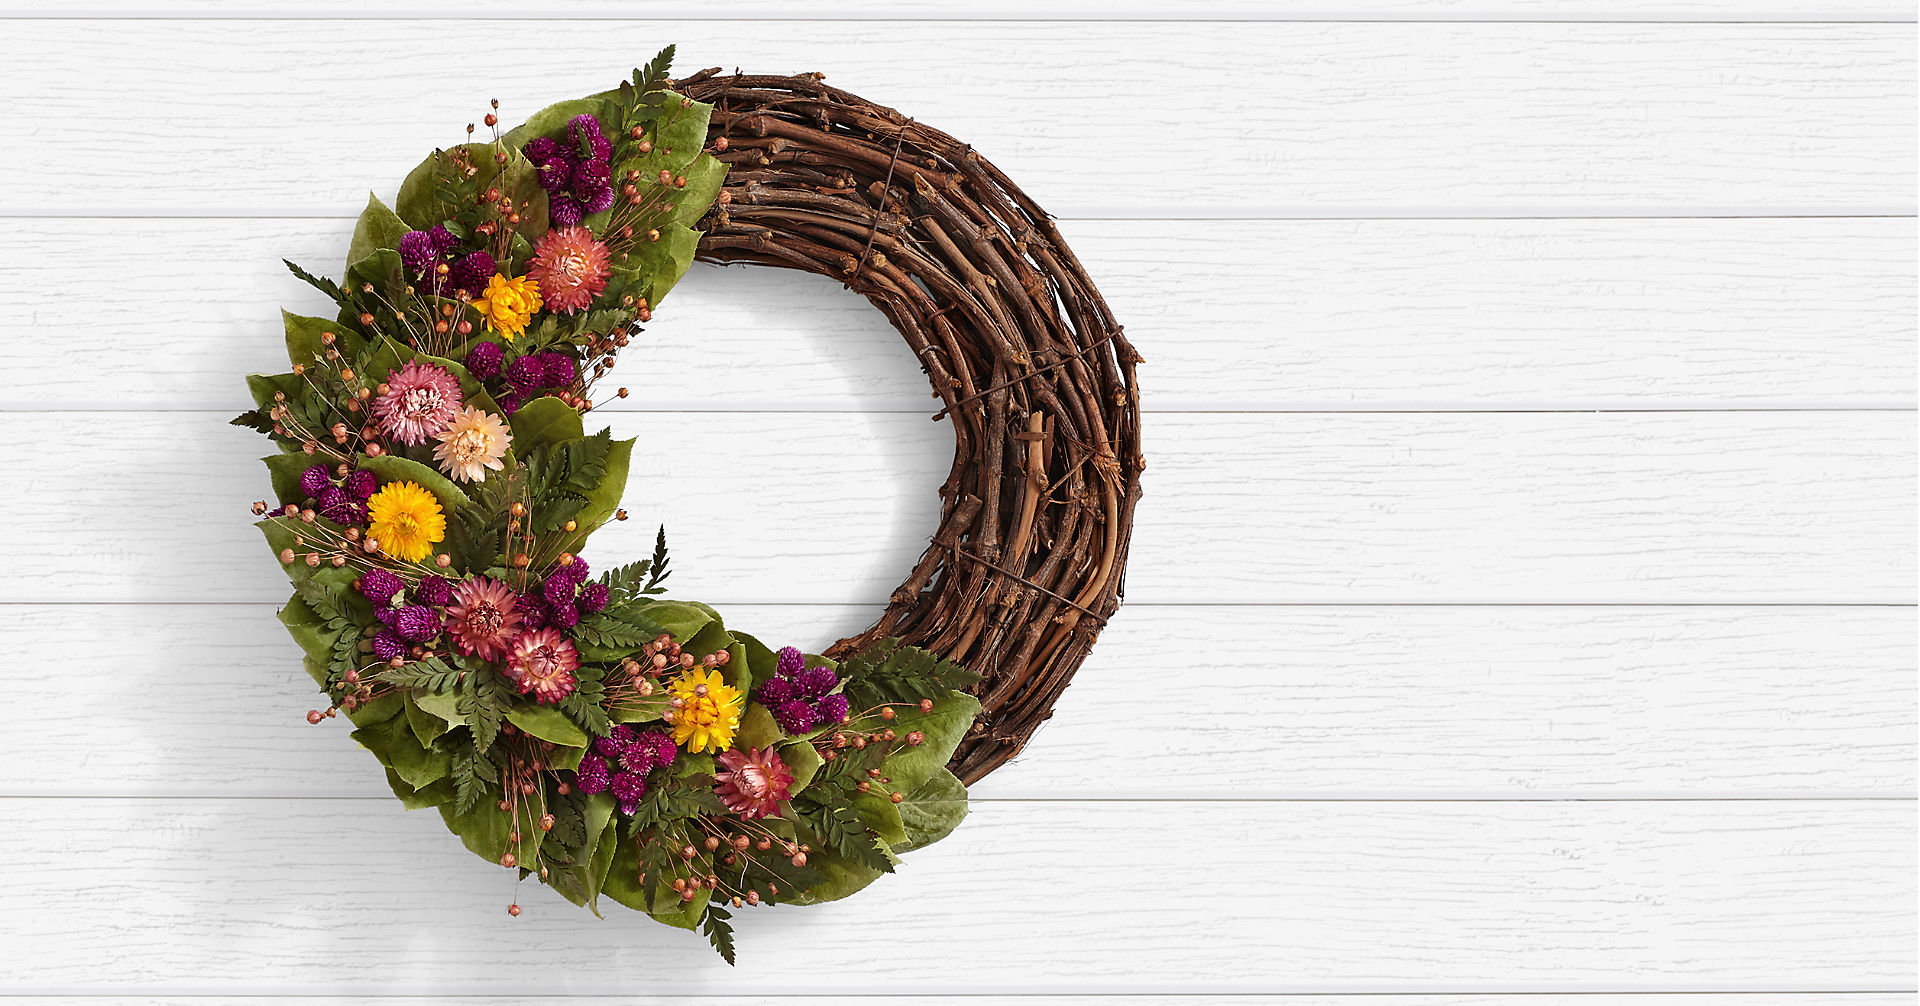 Garden Strawflower Wreath - Image 1 Of 2